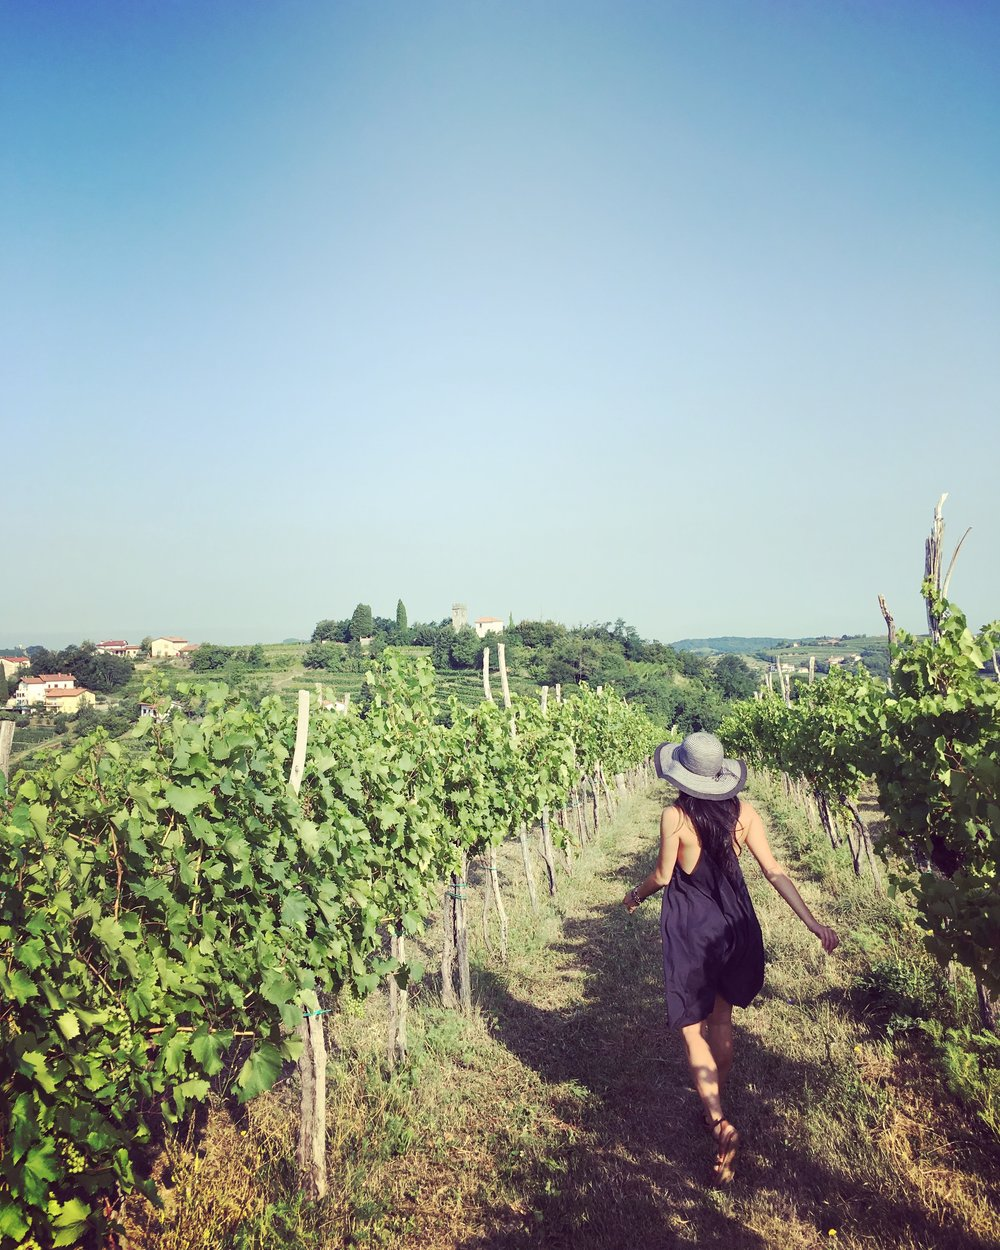 Running through the rebula vineyards in Brda.